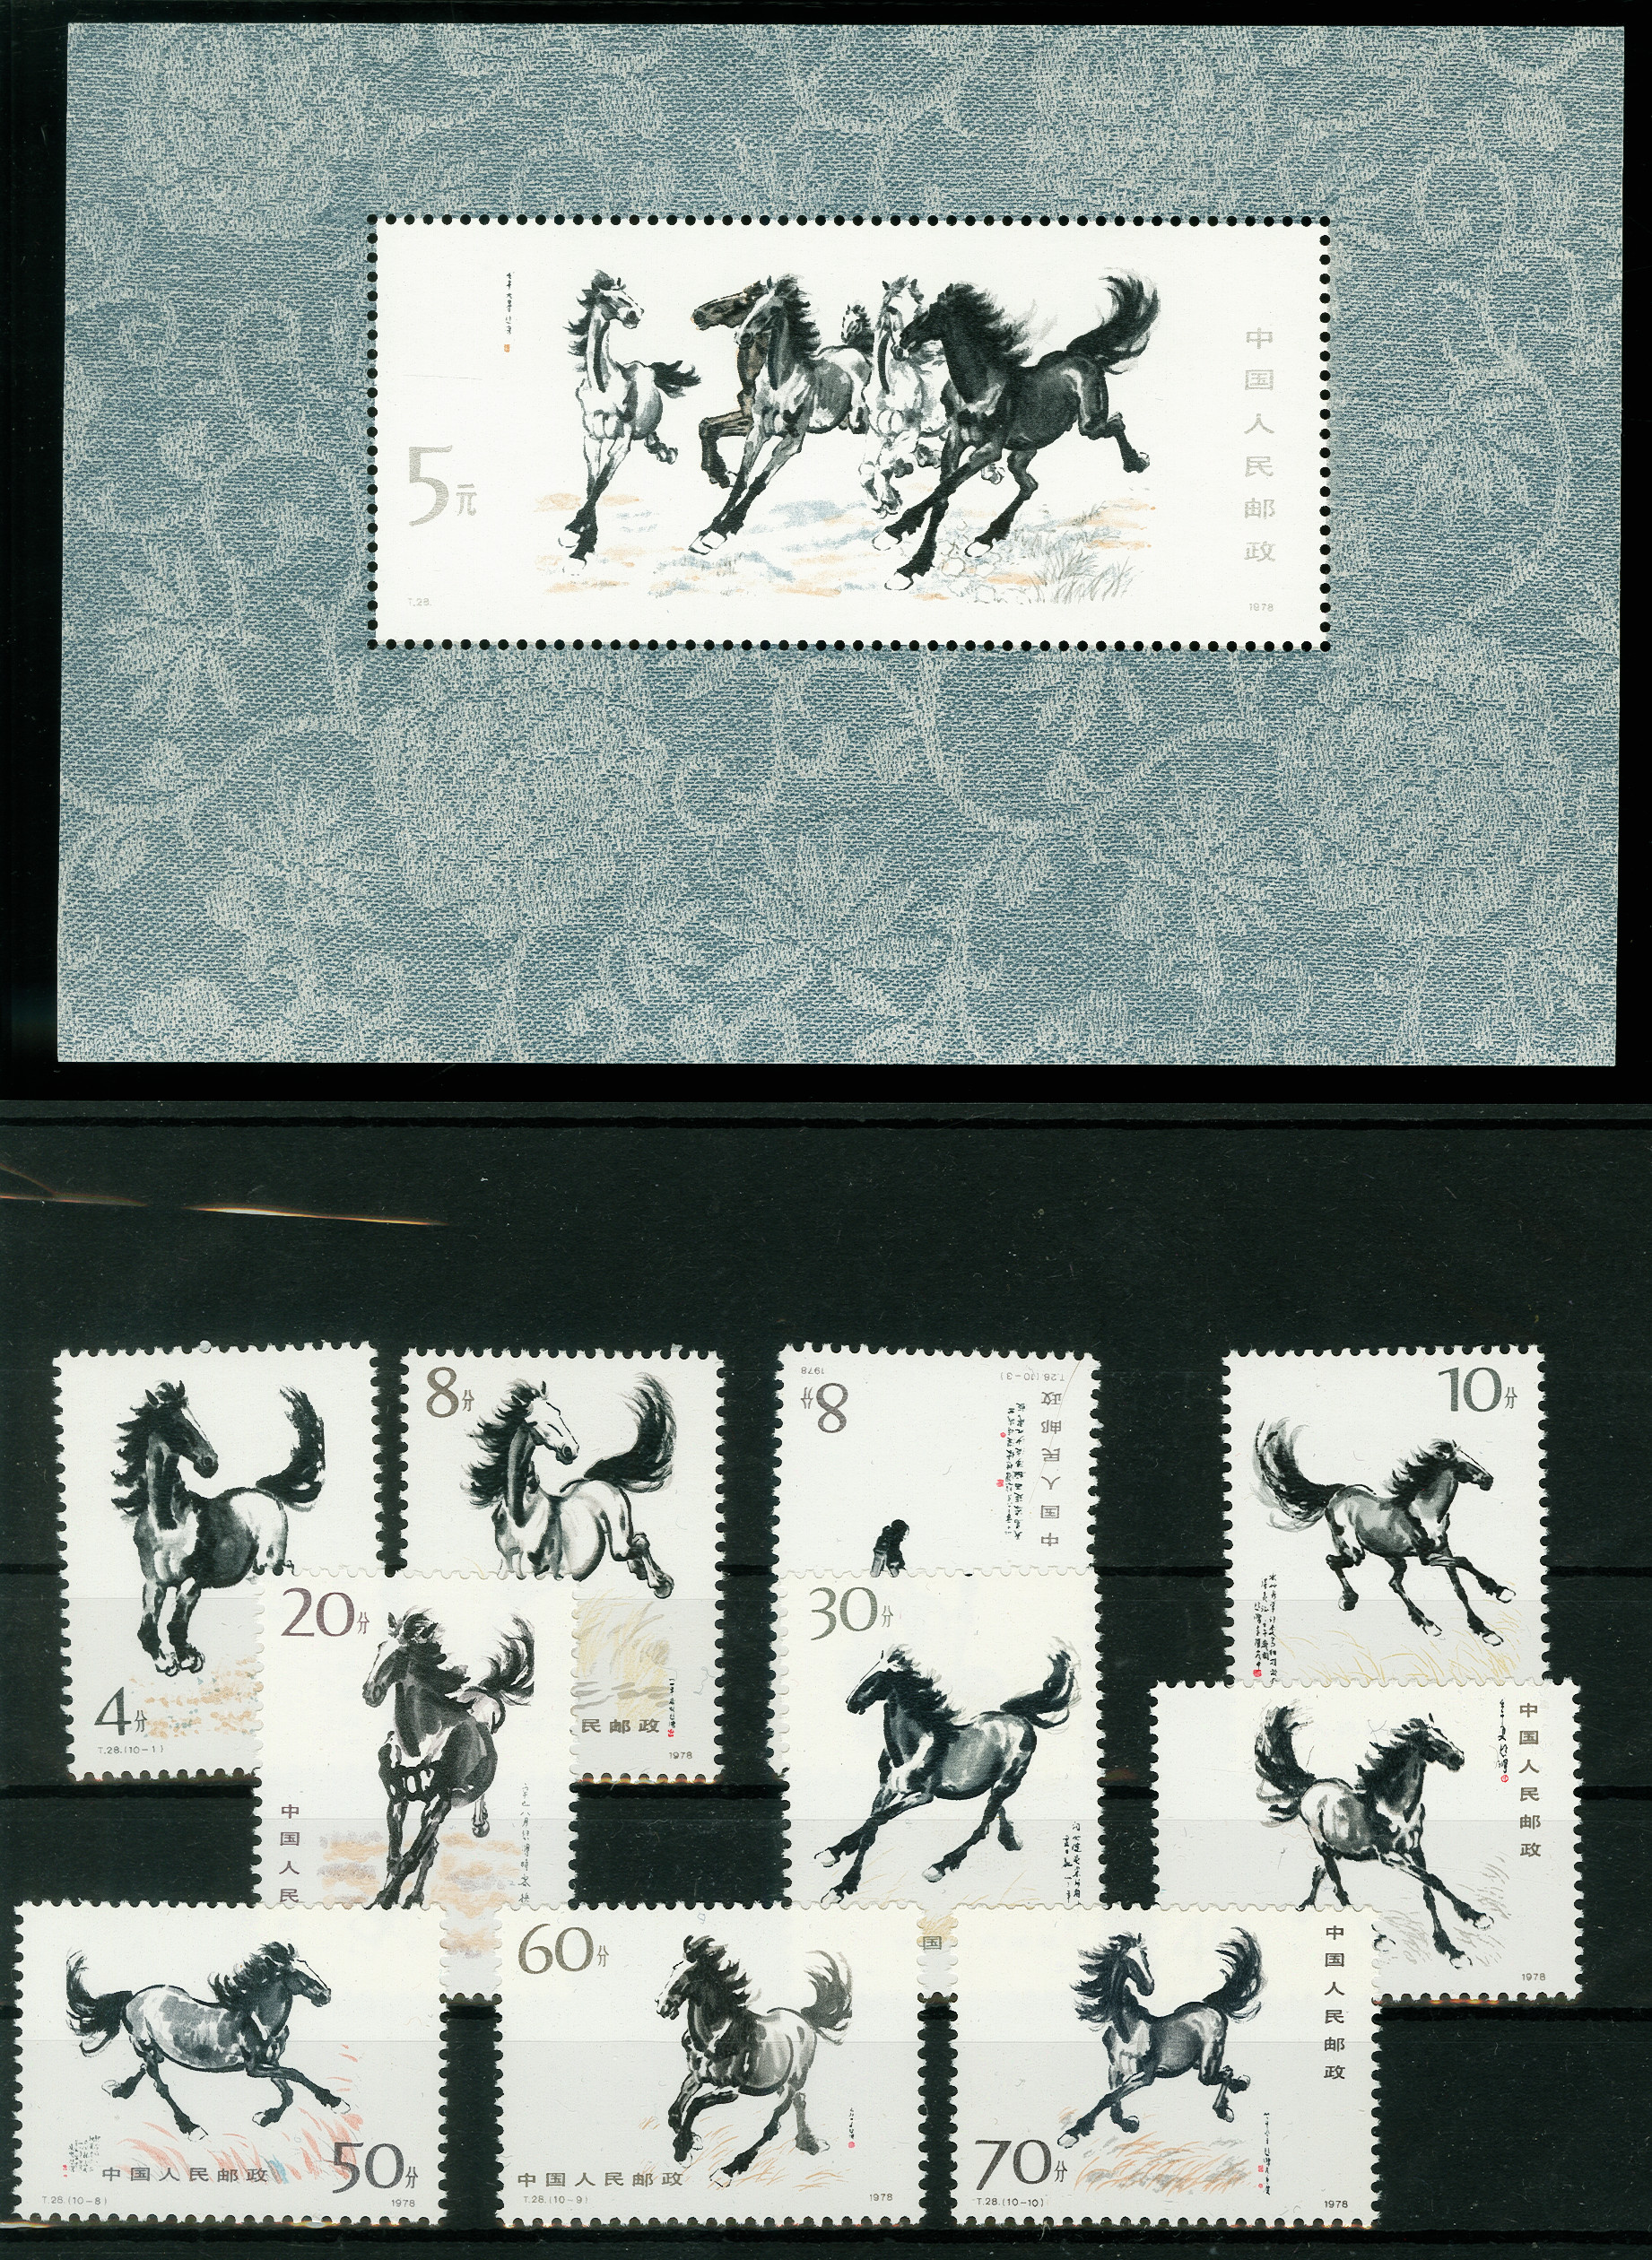 Lot 1008 - Overseas People's Republic of China -  Heinrich Koehler Auktionen Auction #367- Day 1